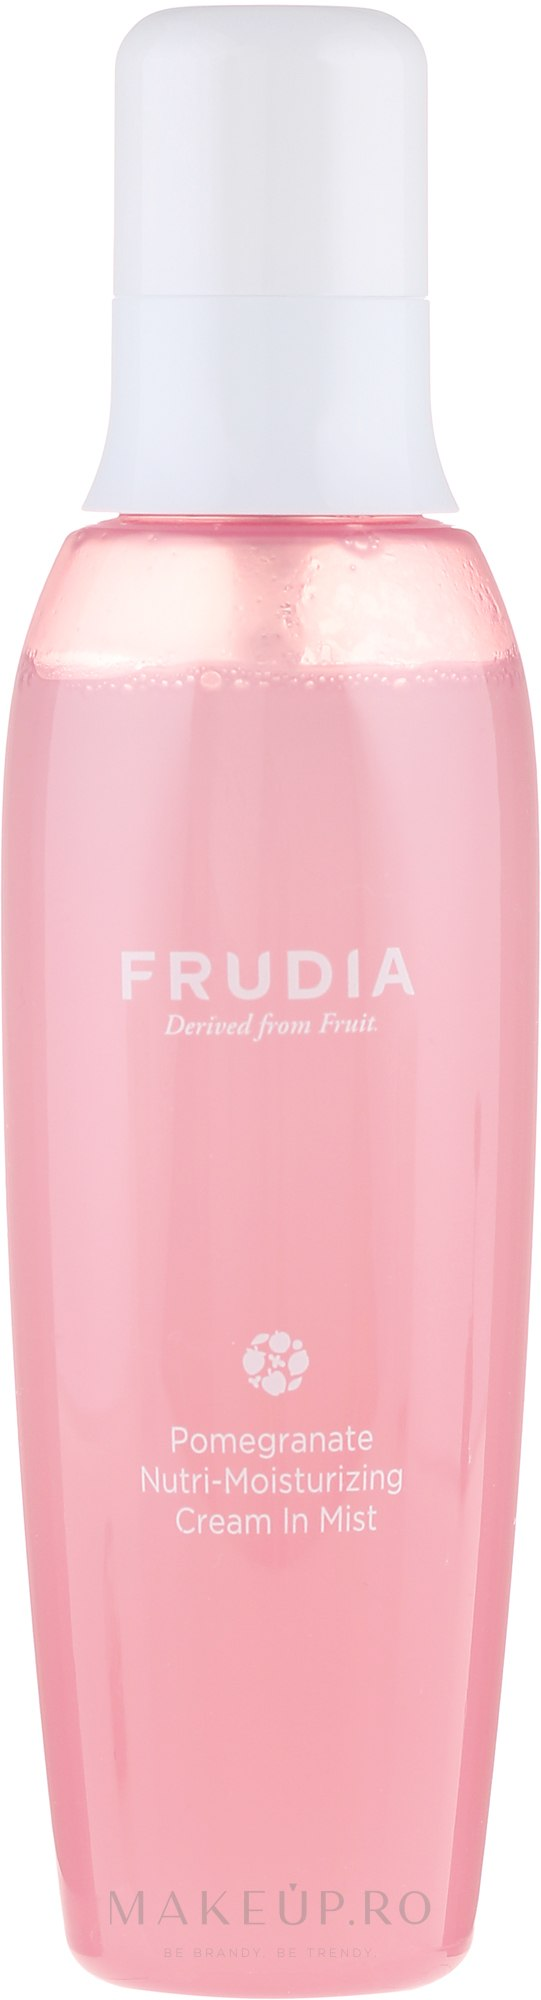 Cremă de față - Frudia Nutri-Moisturizing Pomegranate Cream In Mist — Imagine 110 ml